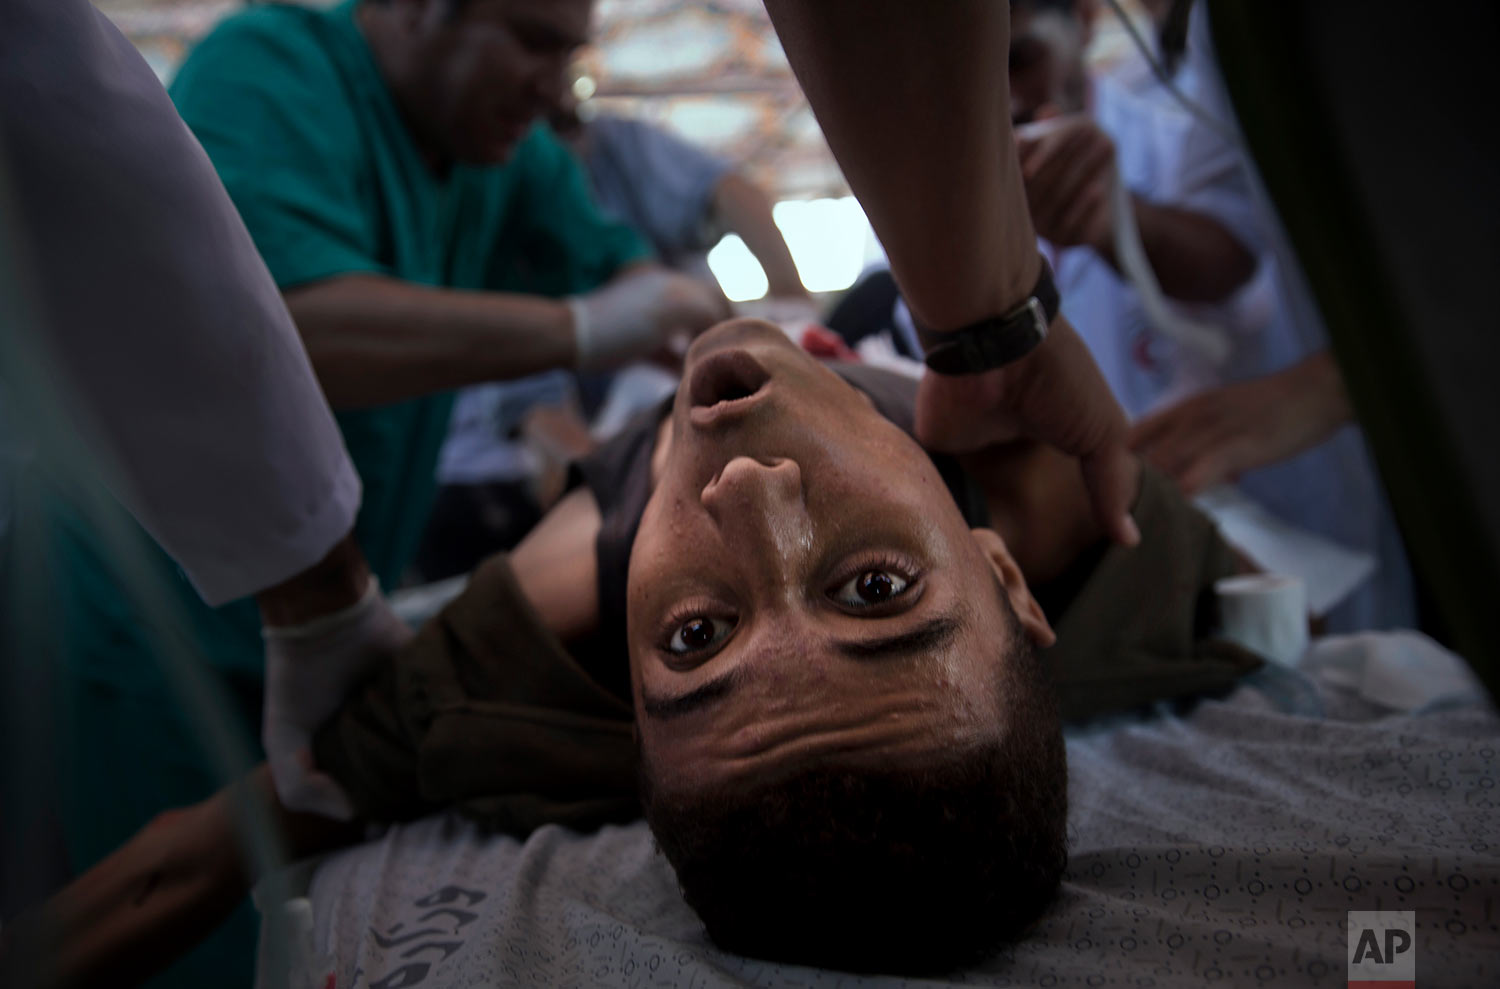 An injured Palestinian youth receives treatment in a field clinic after being shot by Israeli troops during a protest at the Gaza Strip's border with Israel, Friday, July 20, 2018.(AP Photo/Khalil Hamra)